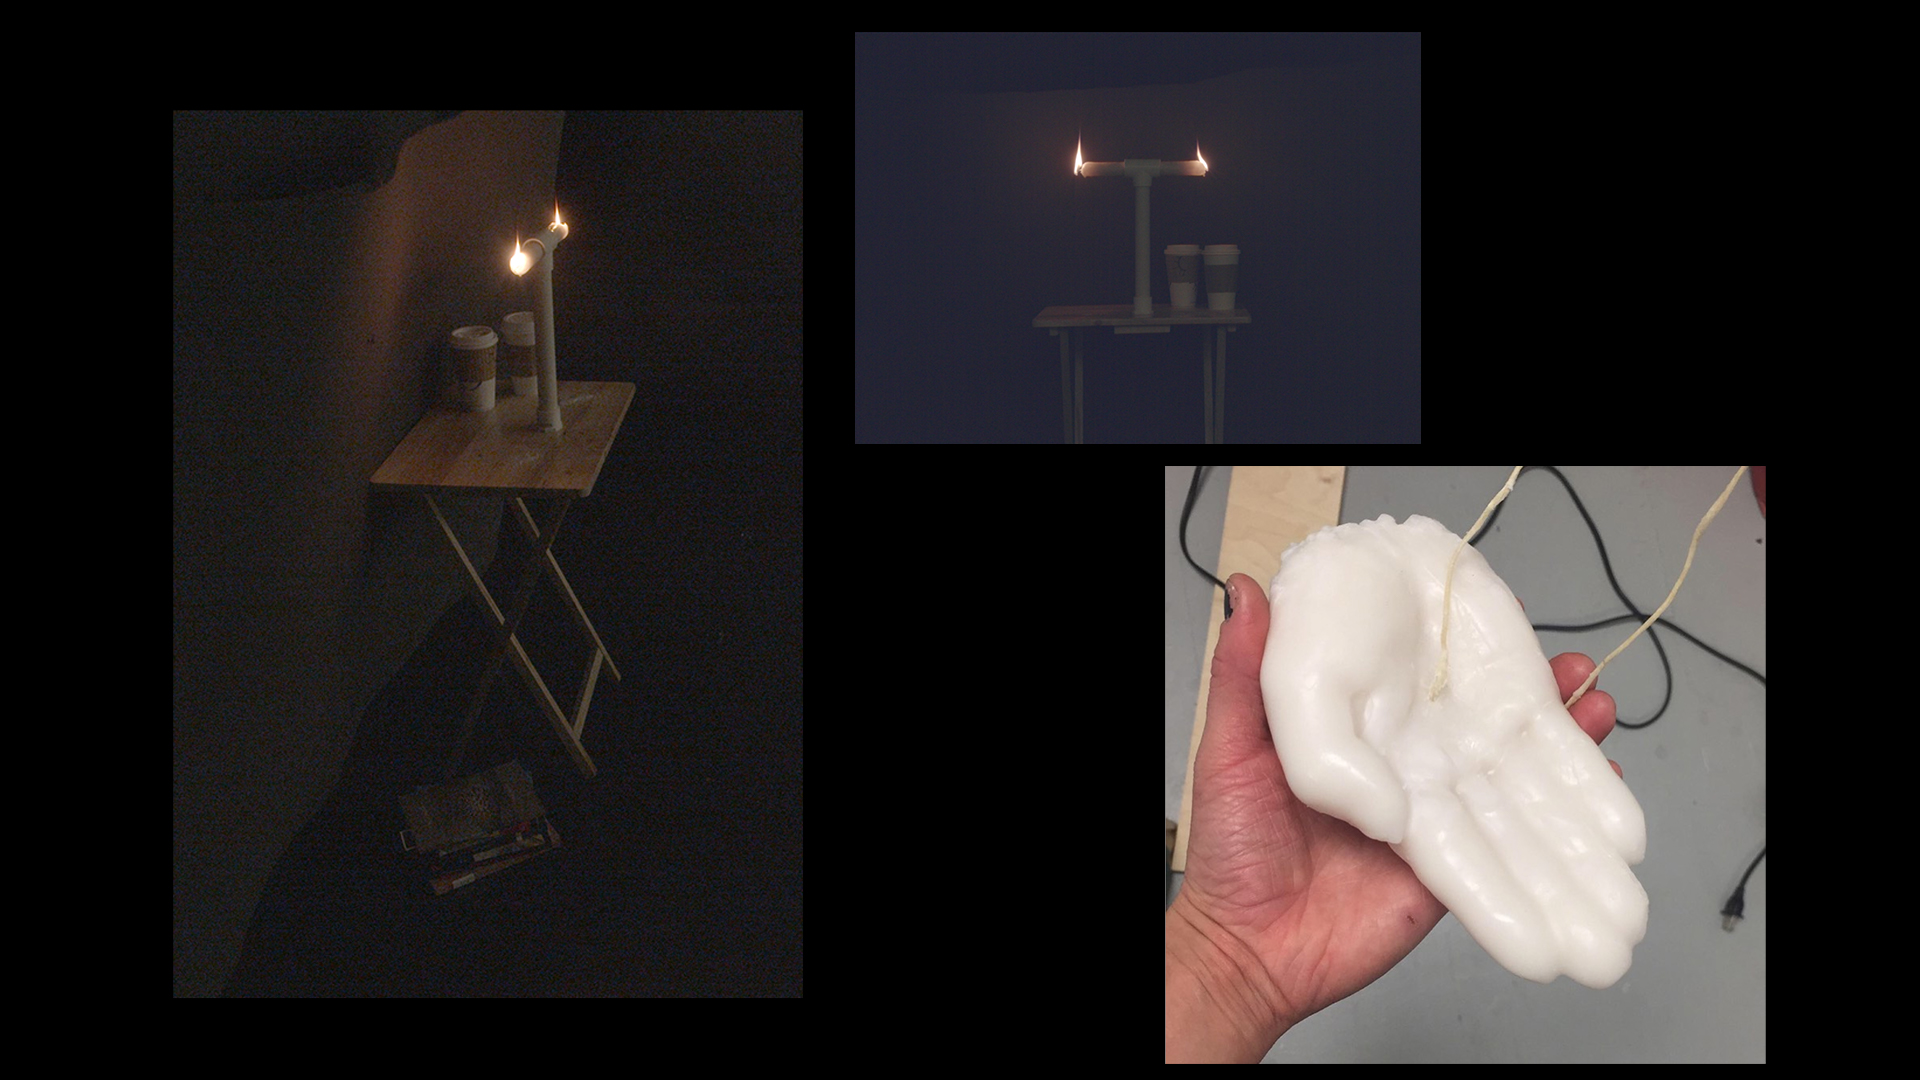 Caitlin Jane Mattia - Candle Series selections: Burns at Both Ends; Stigmata Candle